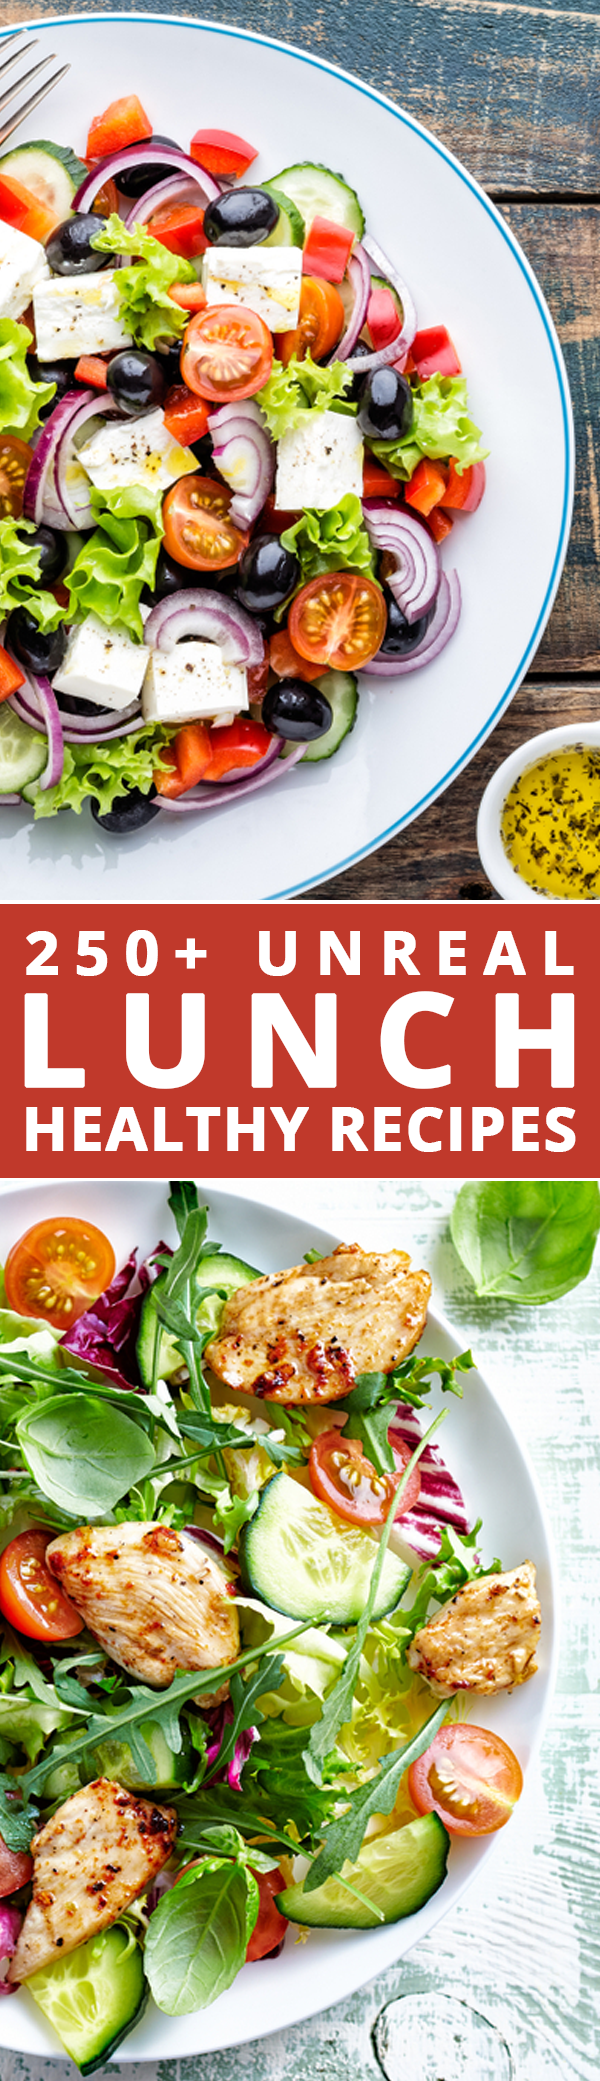 140 Amazing Healthy Lunch Recipes Lunch Recipes Healthy Healthy Lunch Recipes Healthy Lunch